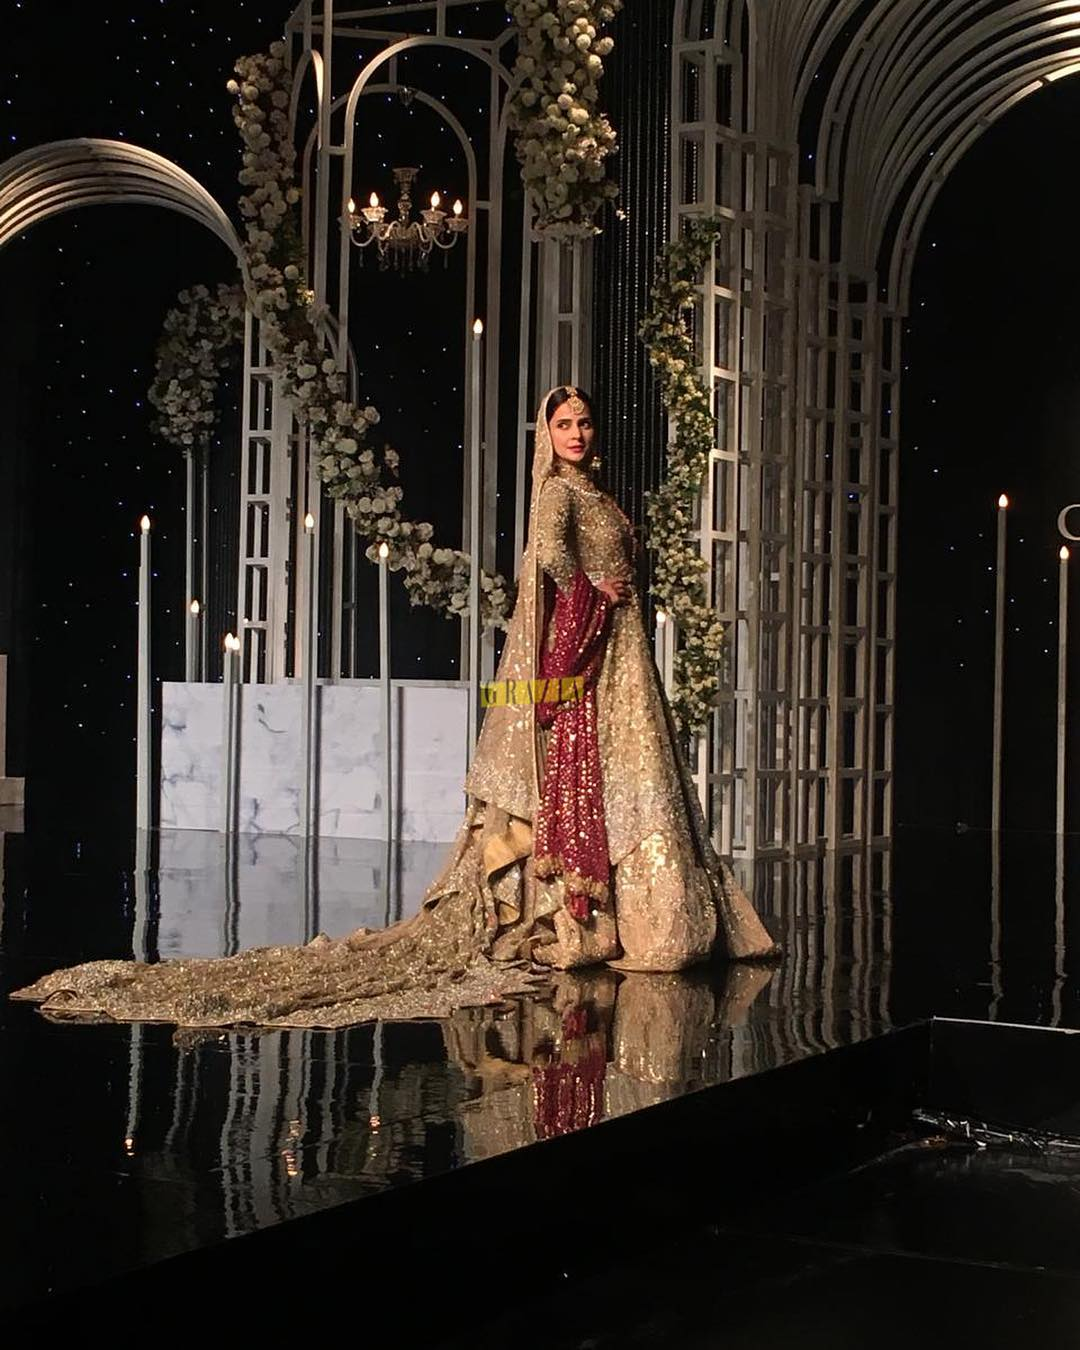 Awesome Entry of Saba Qamar on Ramp at PHBCW in Lahore